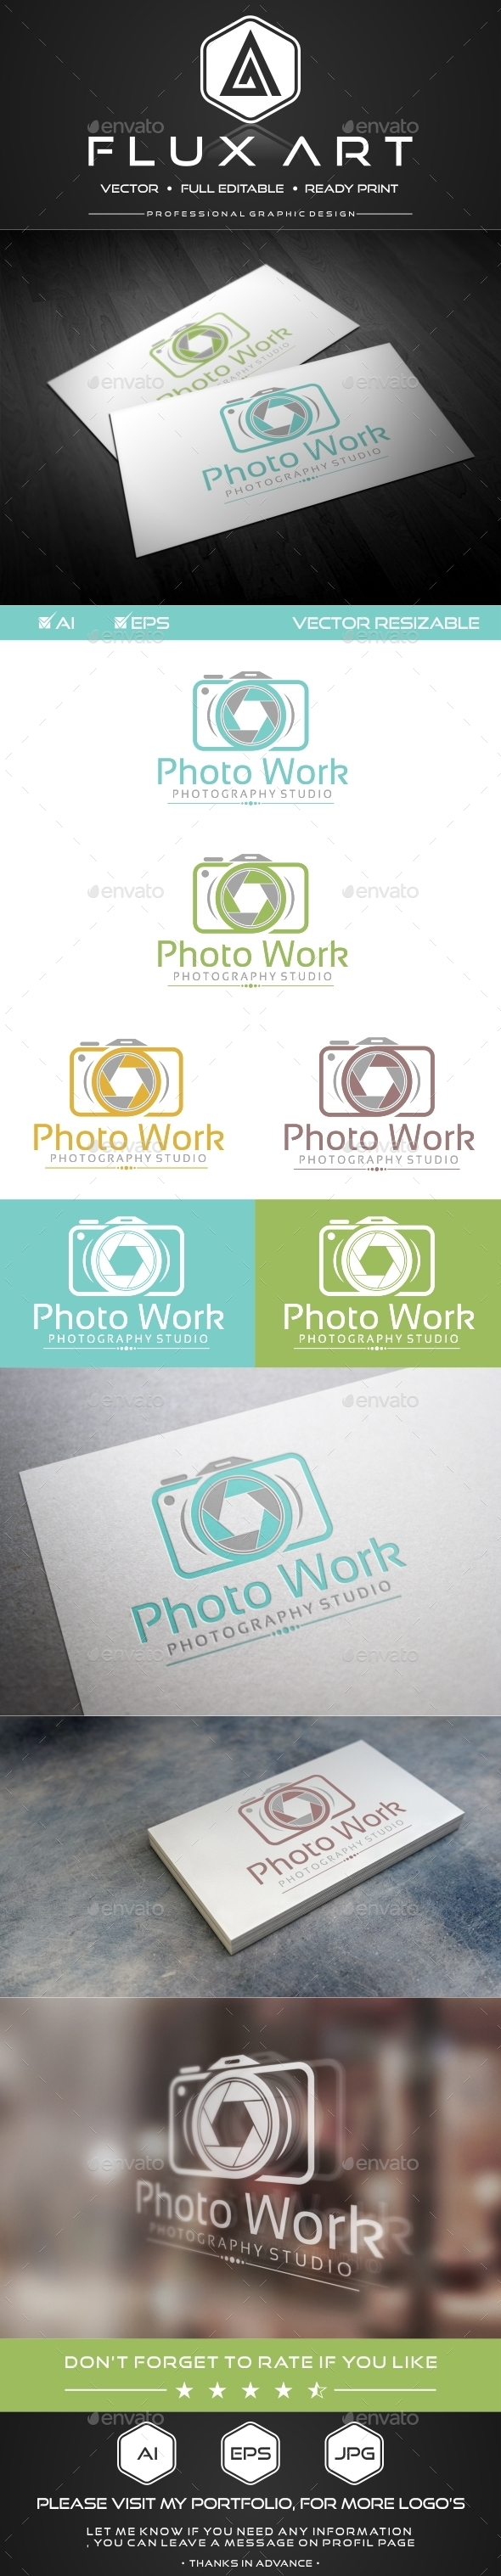 Photography Studio Logo - Abstract Logo Templates